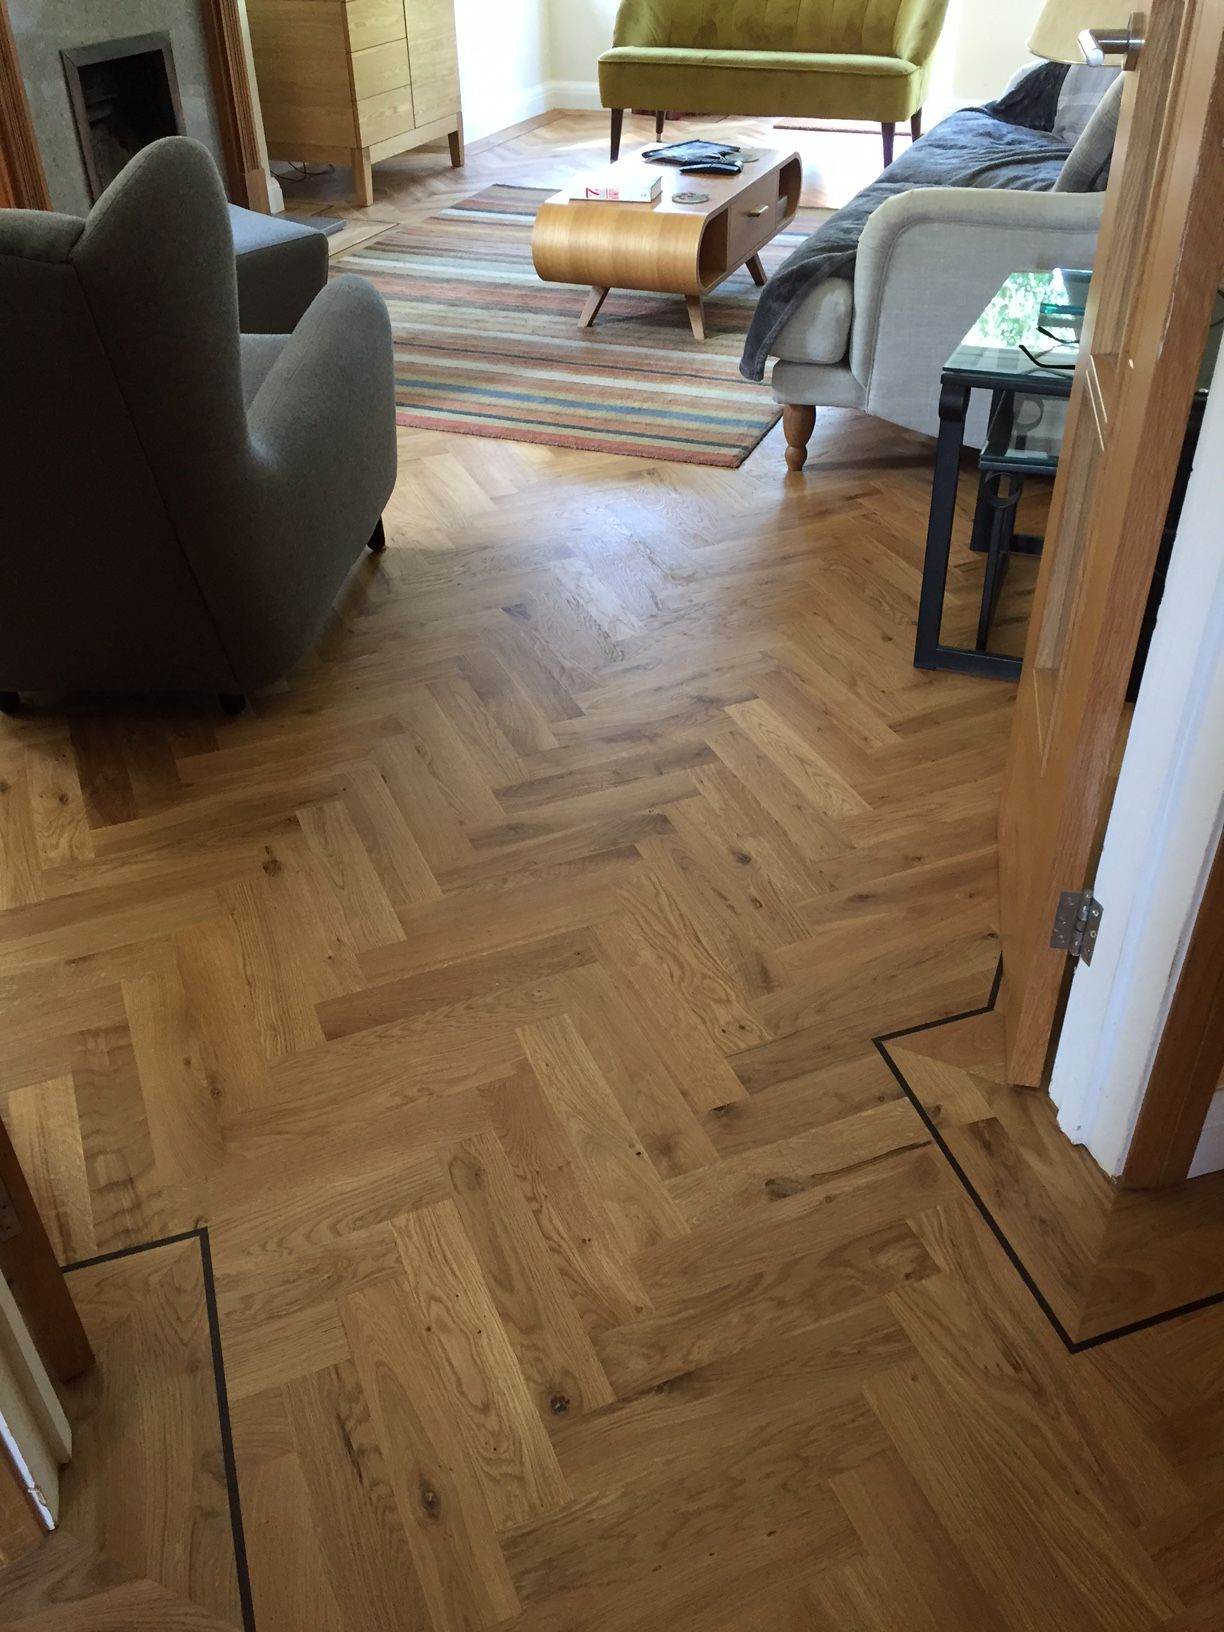 Our beautiful European Engineered Oak in parquet, with a